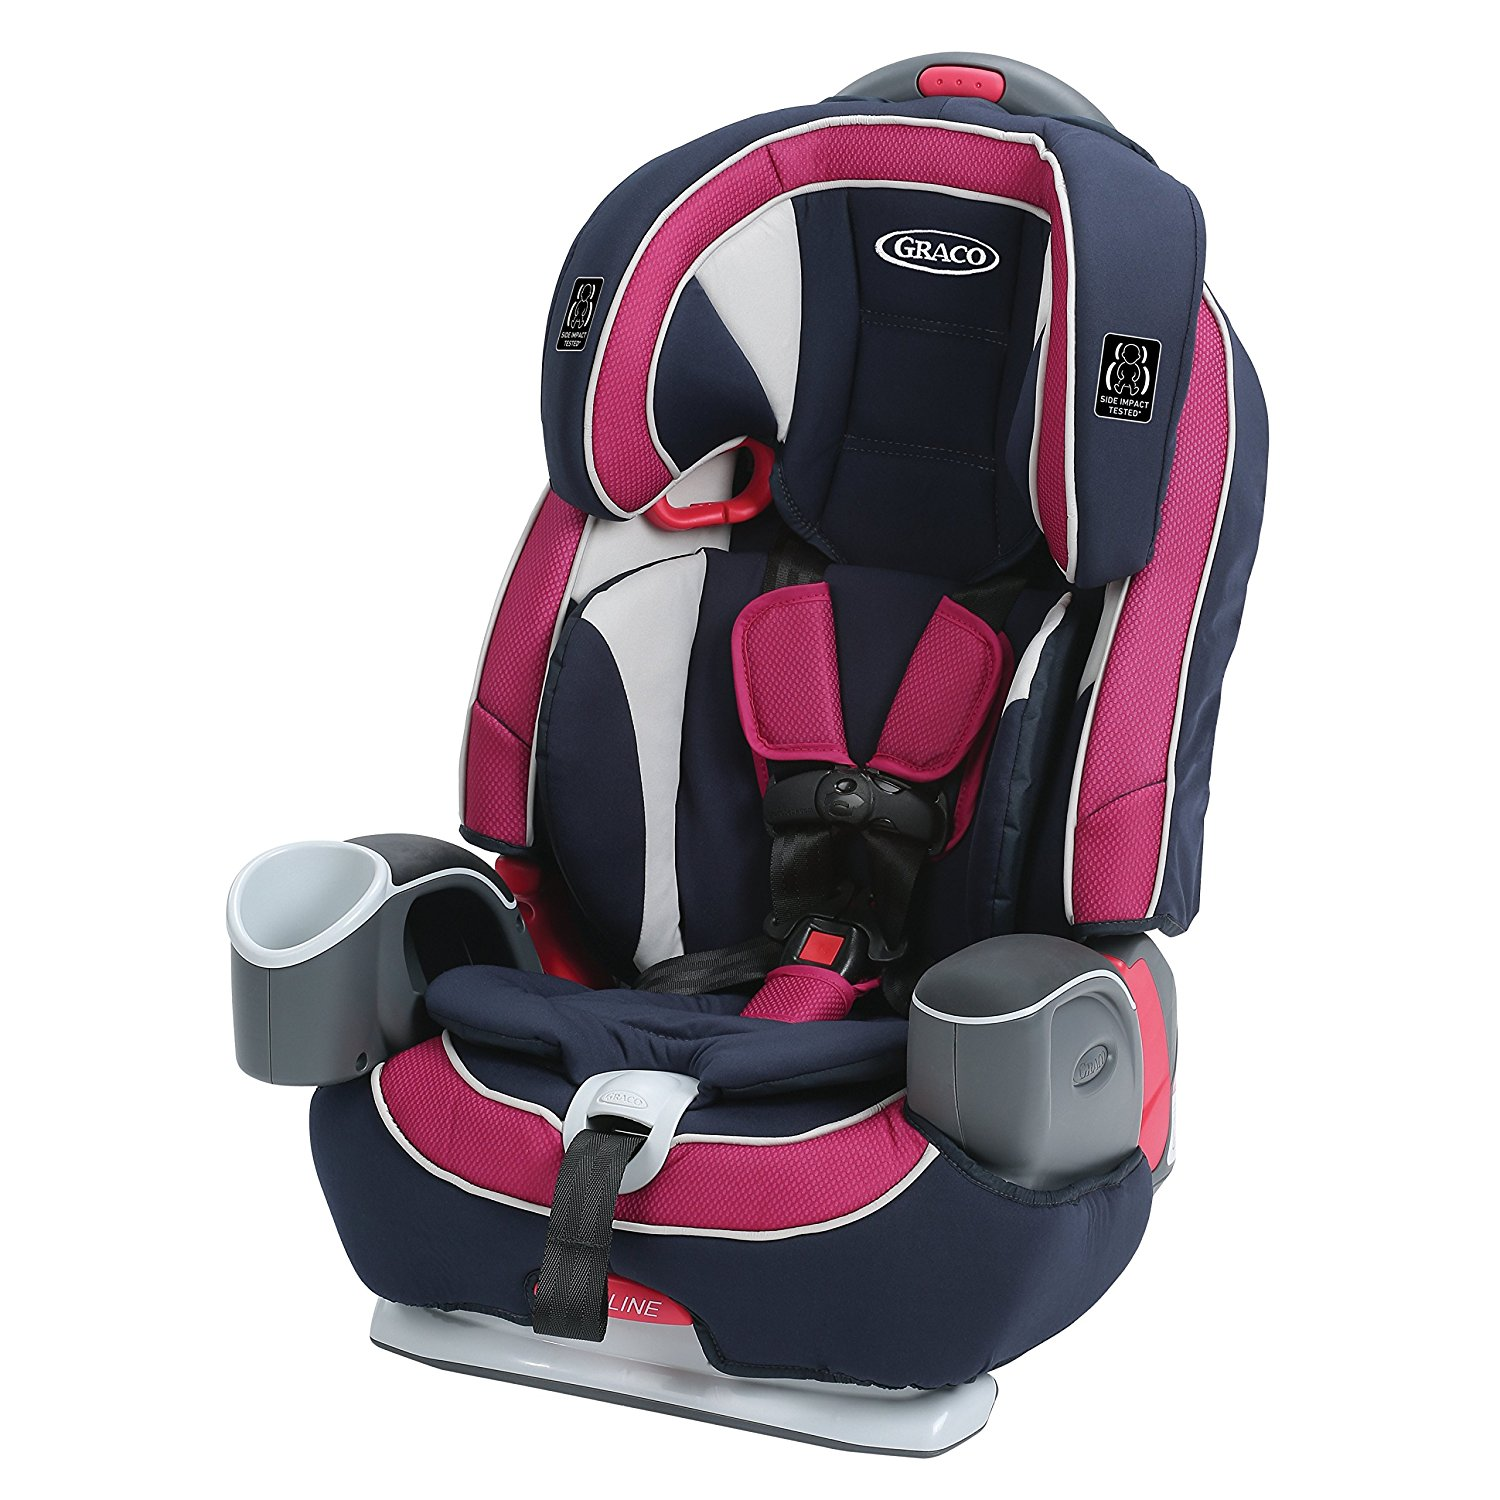 Image is loading Graco-Nautilus-65-3-in-1-Harness-Front-  sc 1 st  eBay & Graco Nautilus 65 3-in-1 Harness Front Facing Multi-Recline ... islam-shia.org